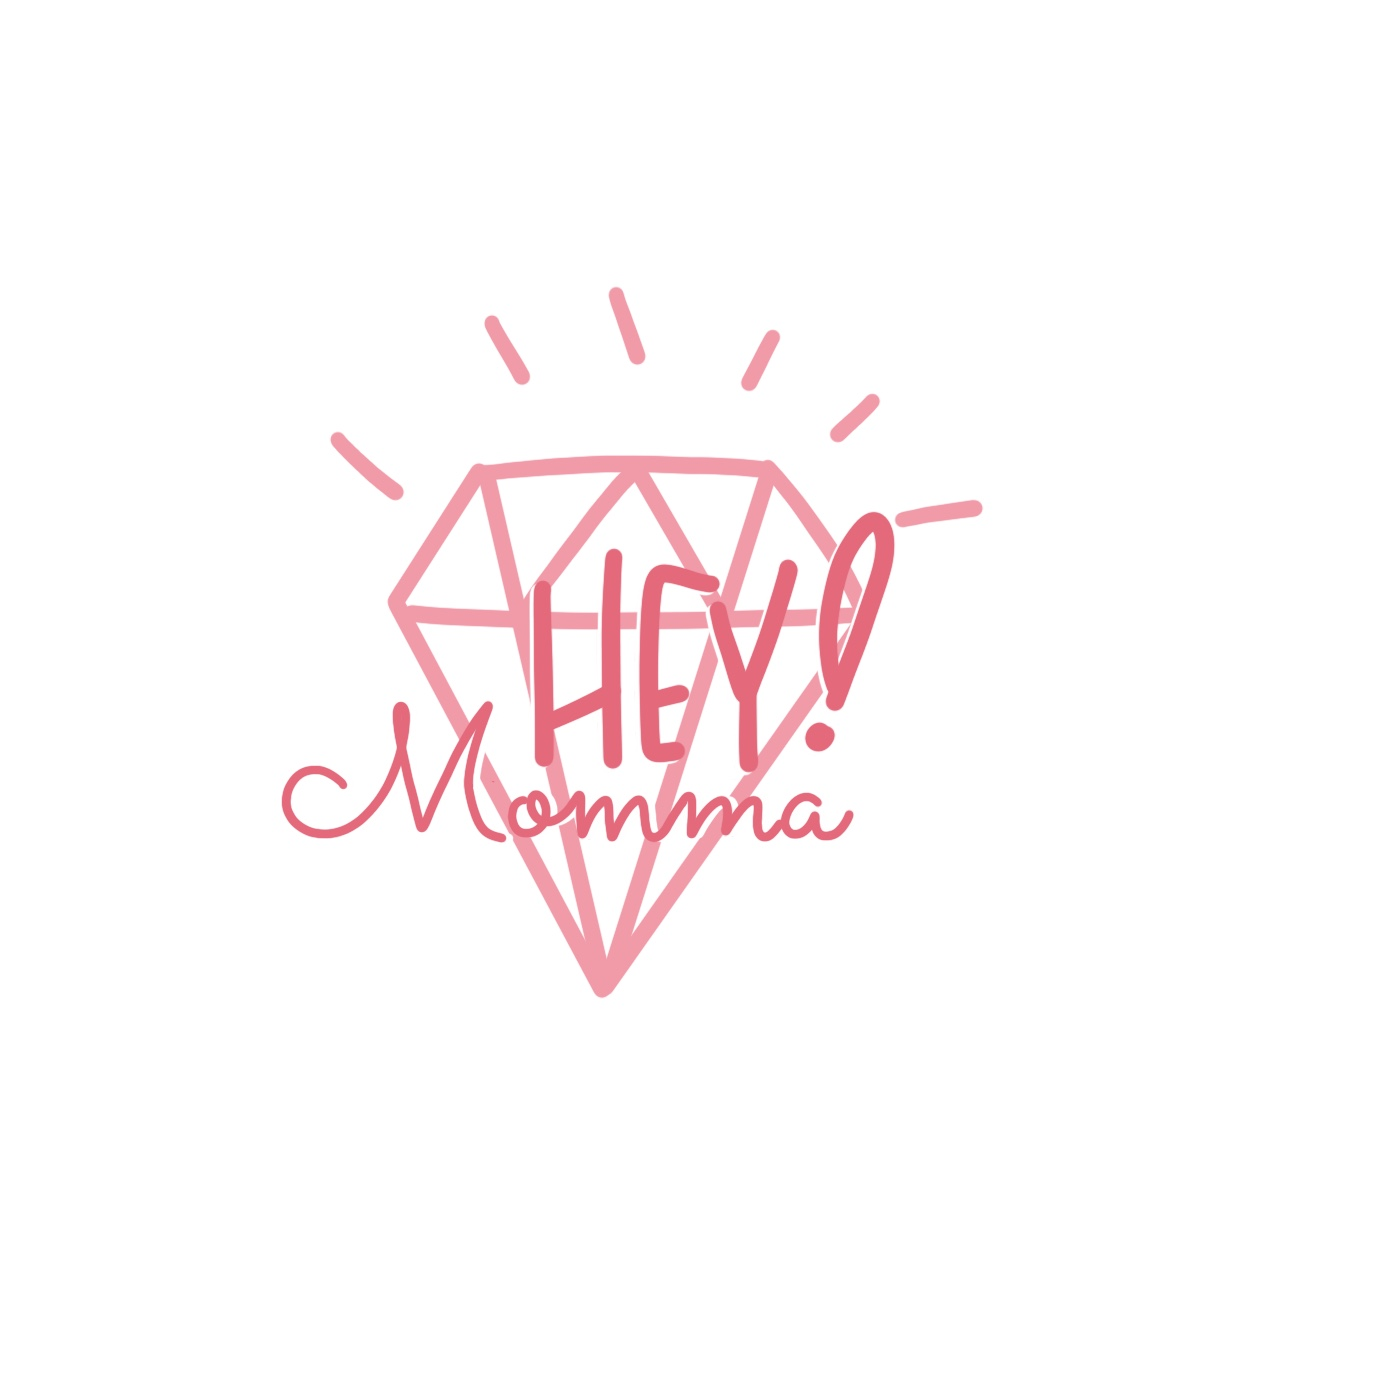 Hey Momma Logo.JPG